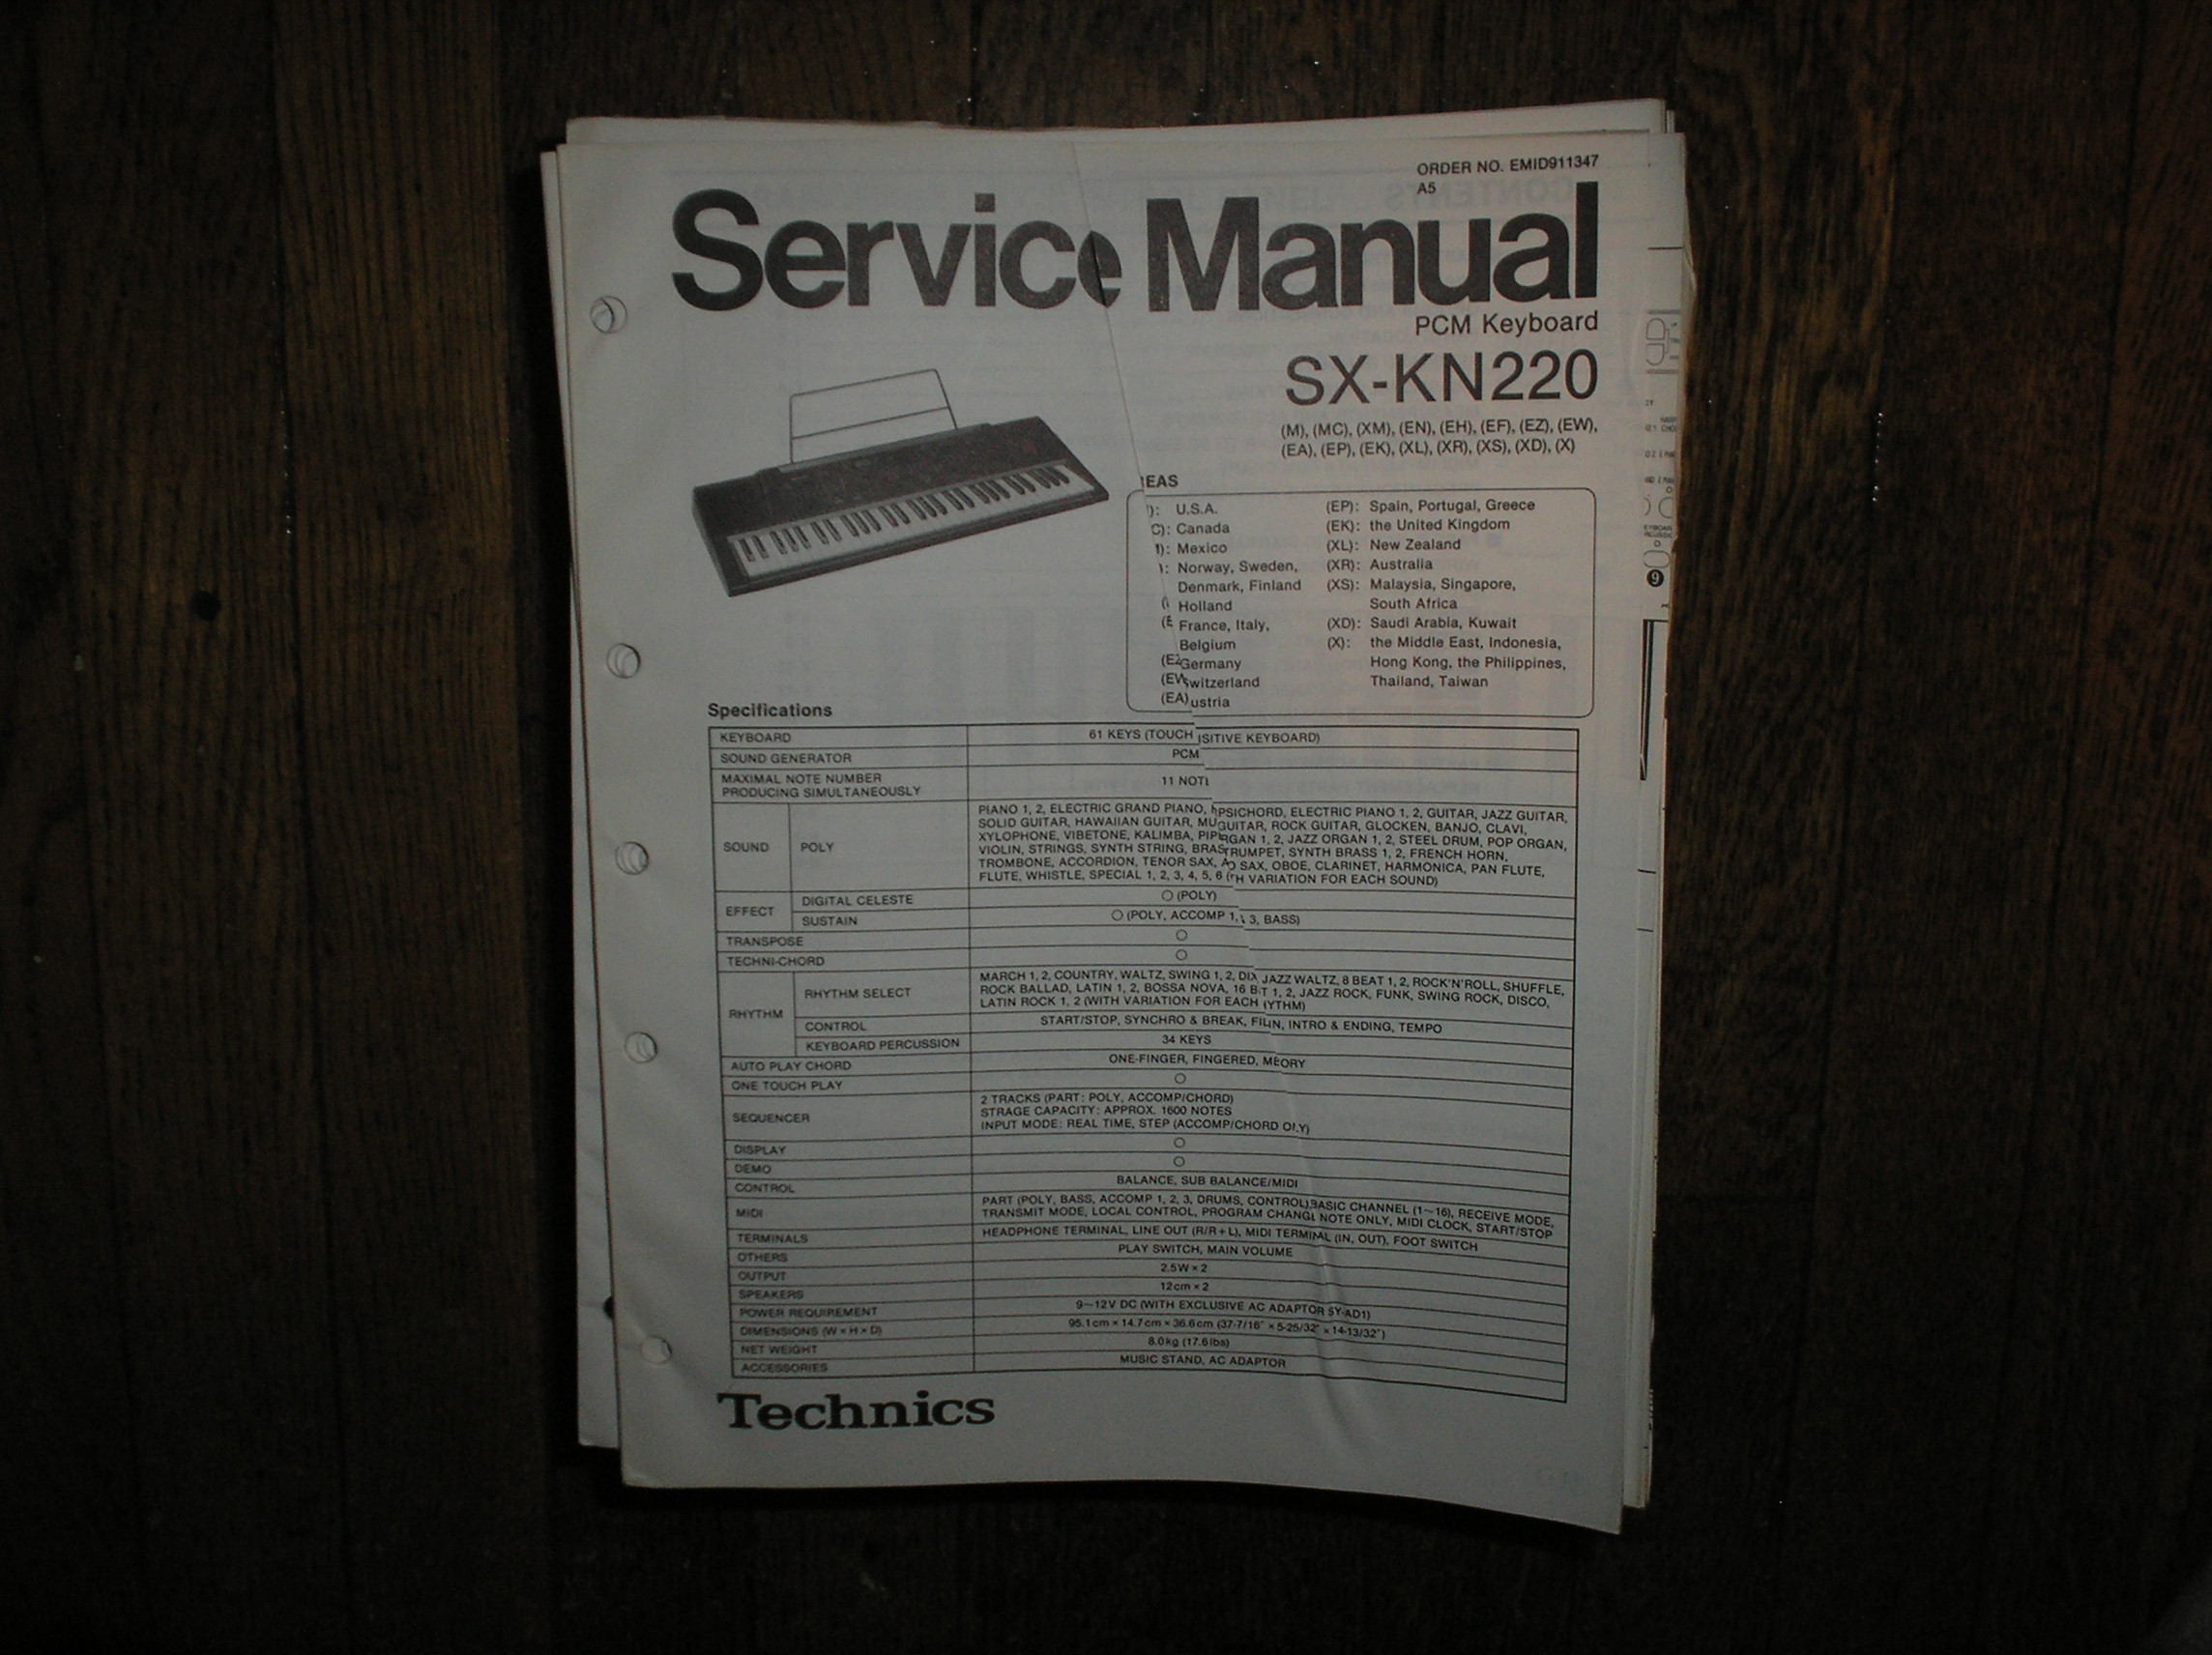 SX-KN220 PCM Keyboard Service Manual